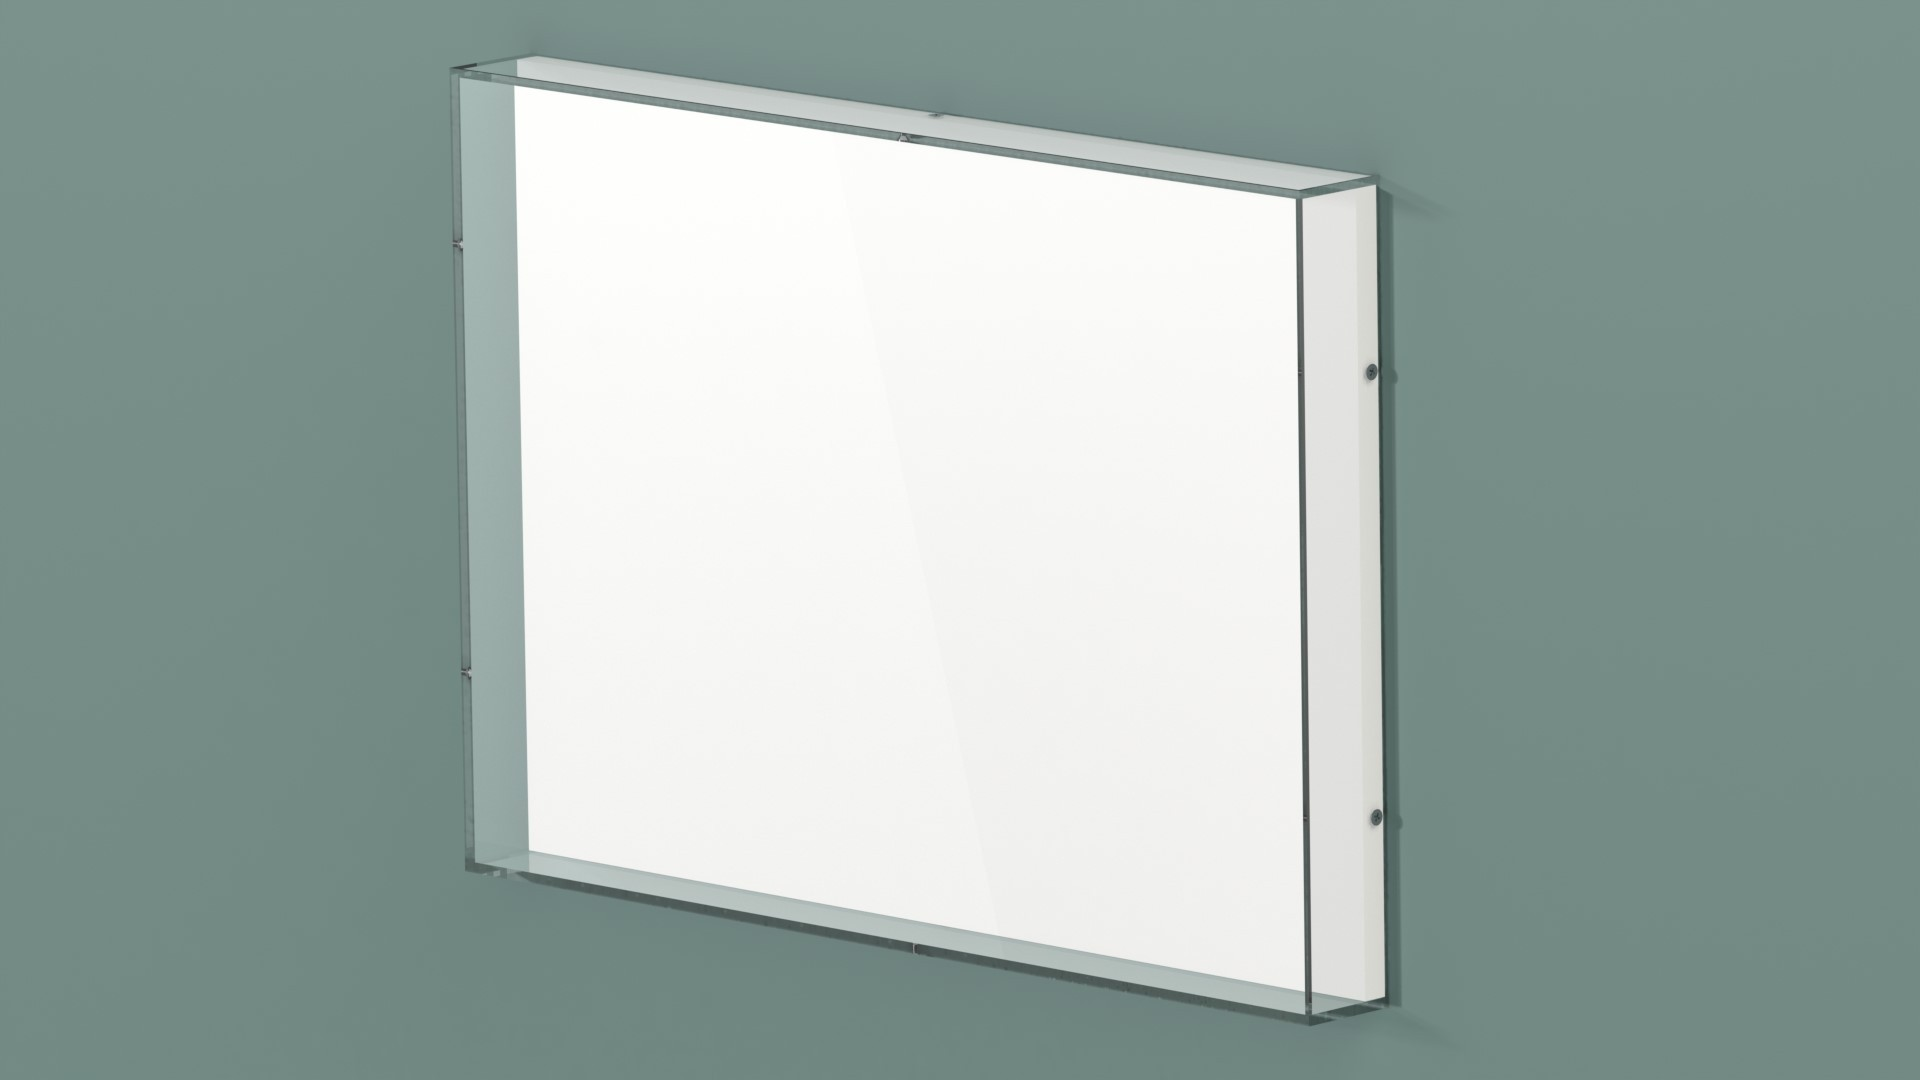 Acrylic wall mounted display case. Perfect for displaying art.